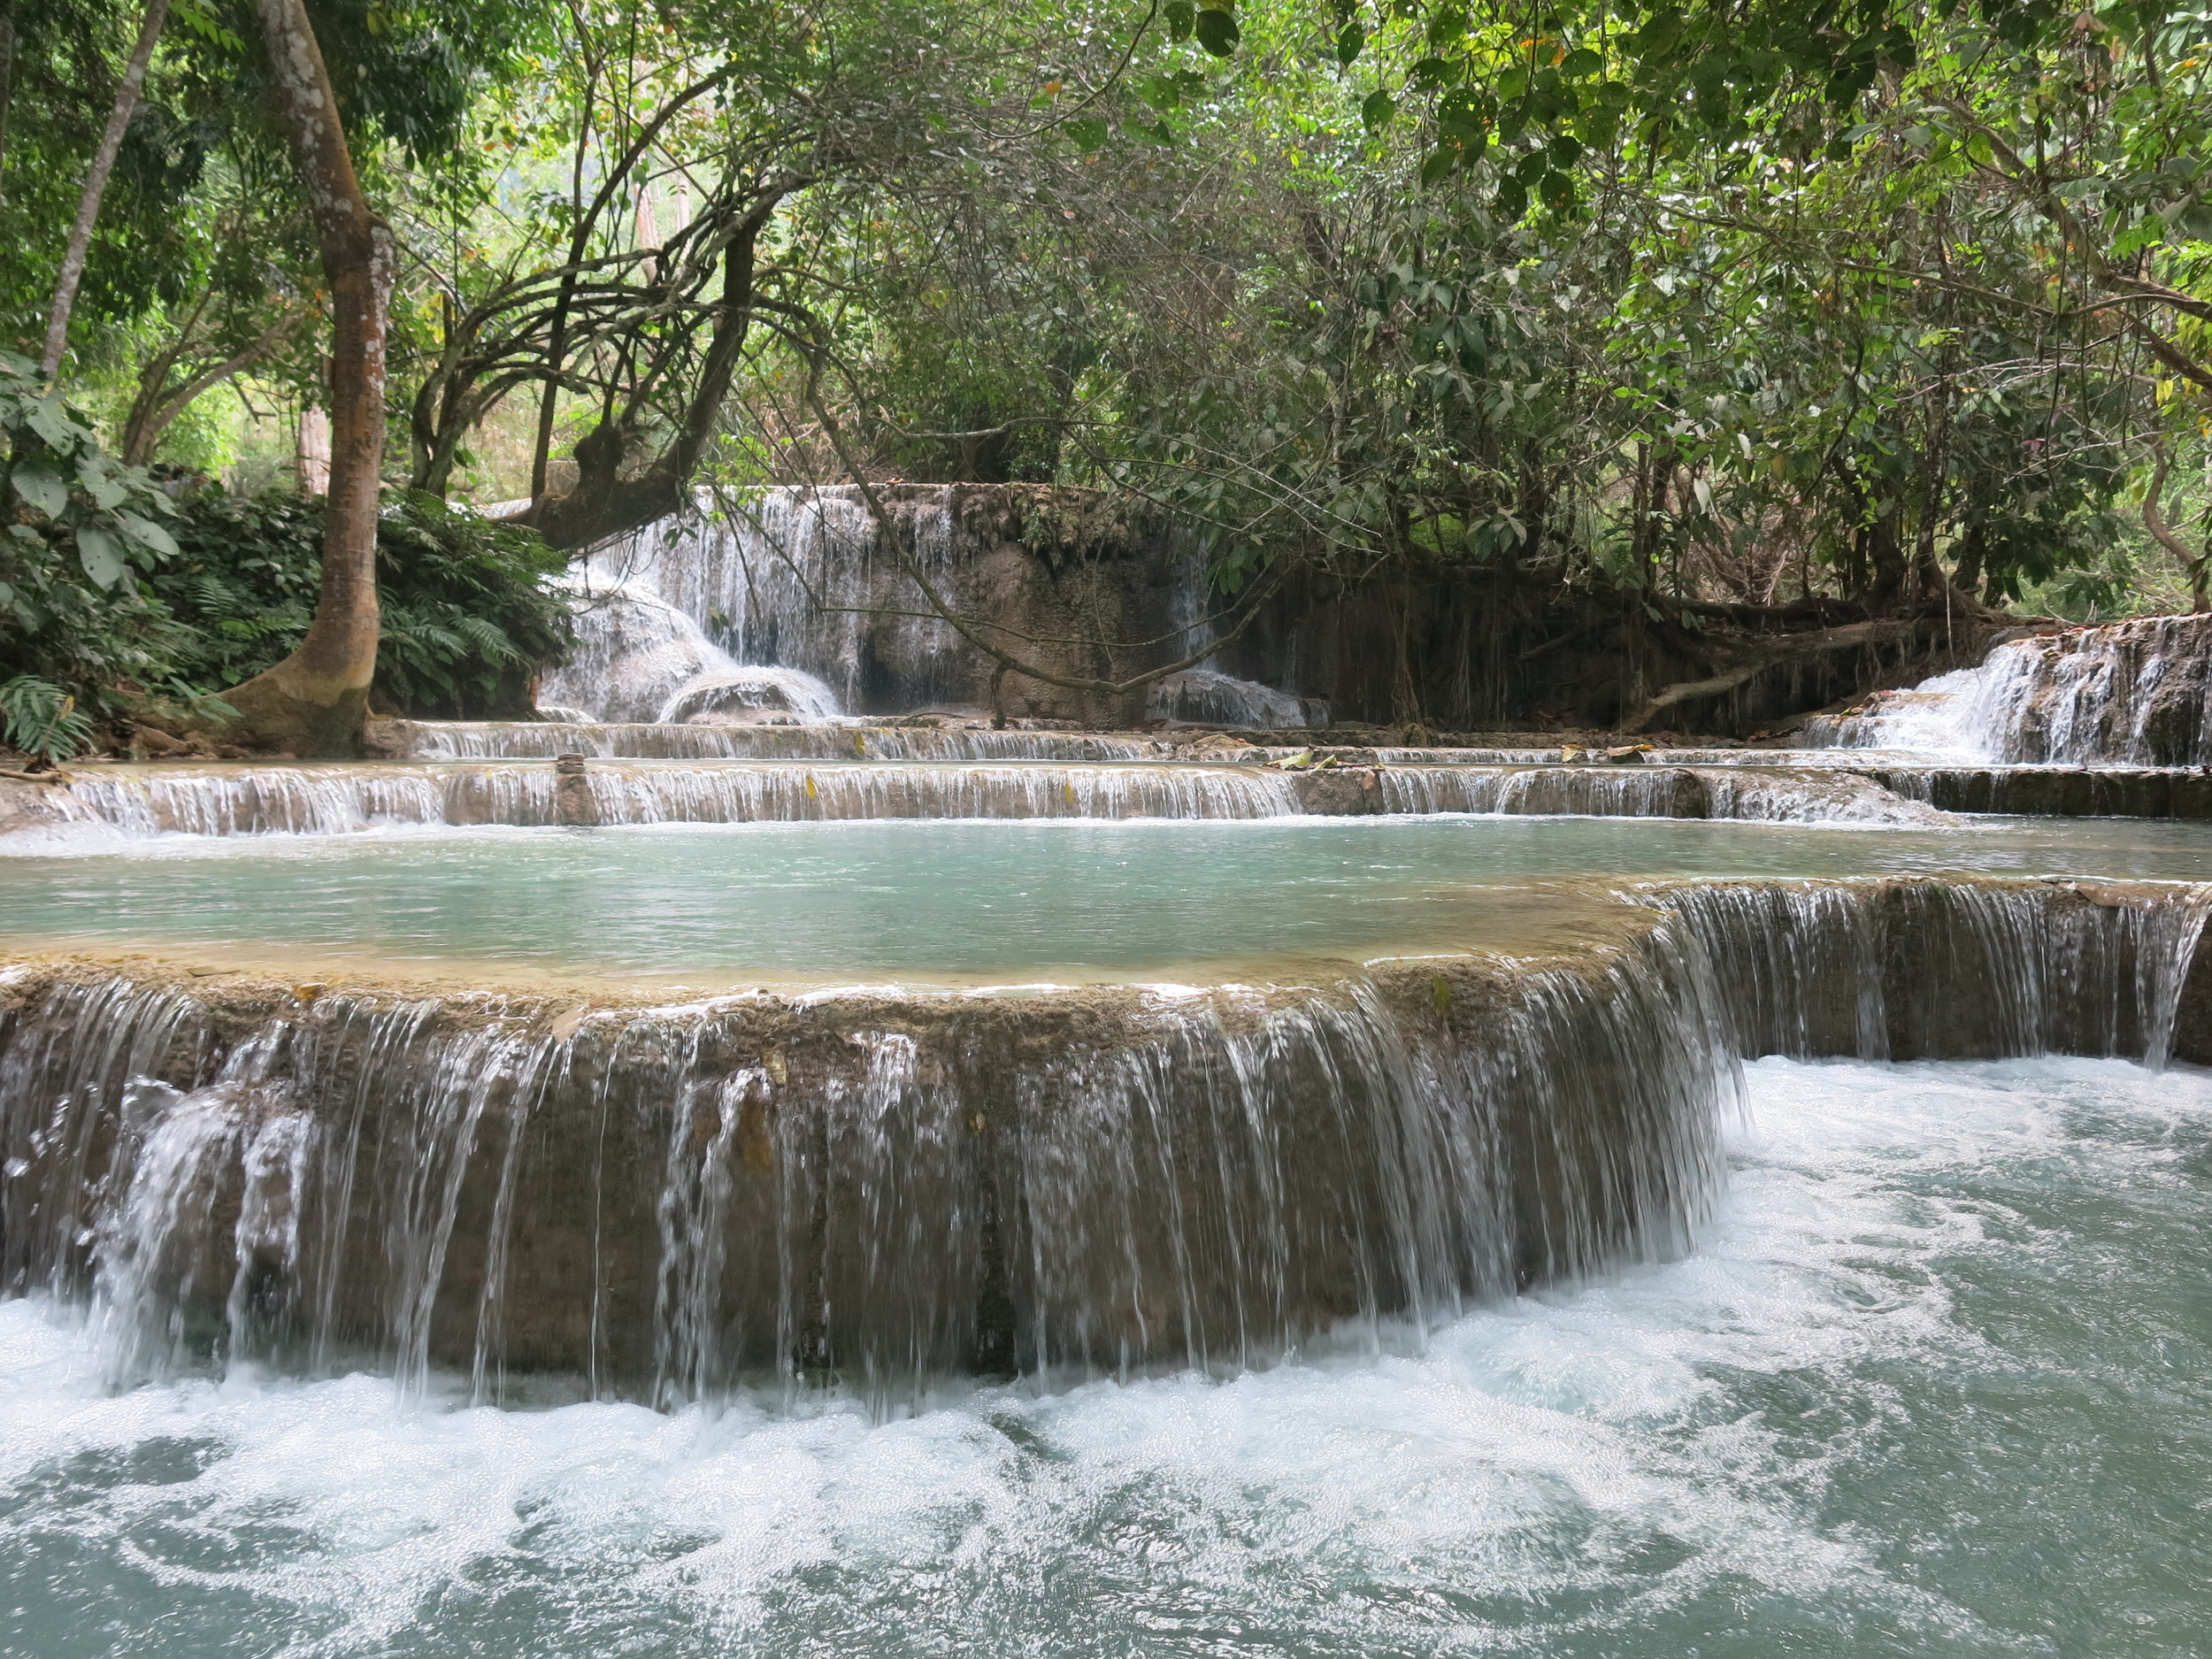 Beautiful waterfall near Luang Prabang, Laos.